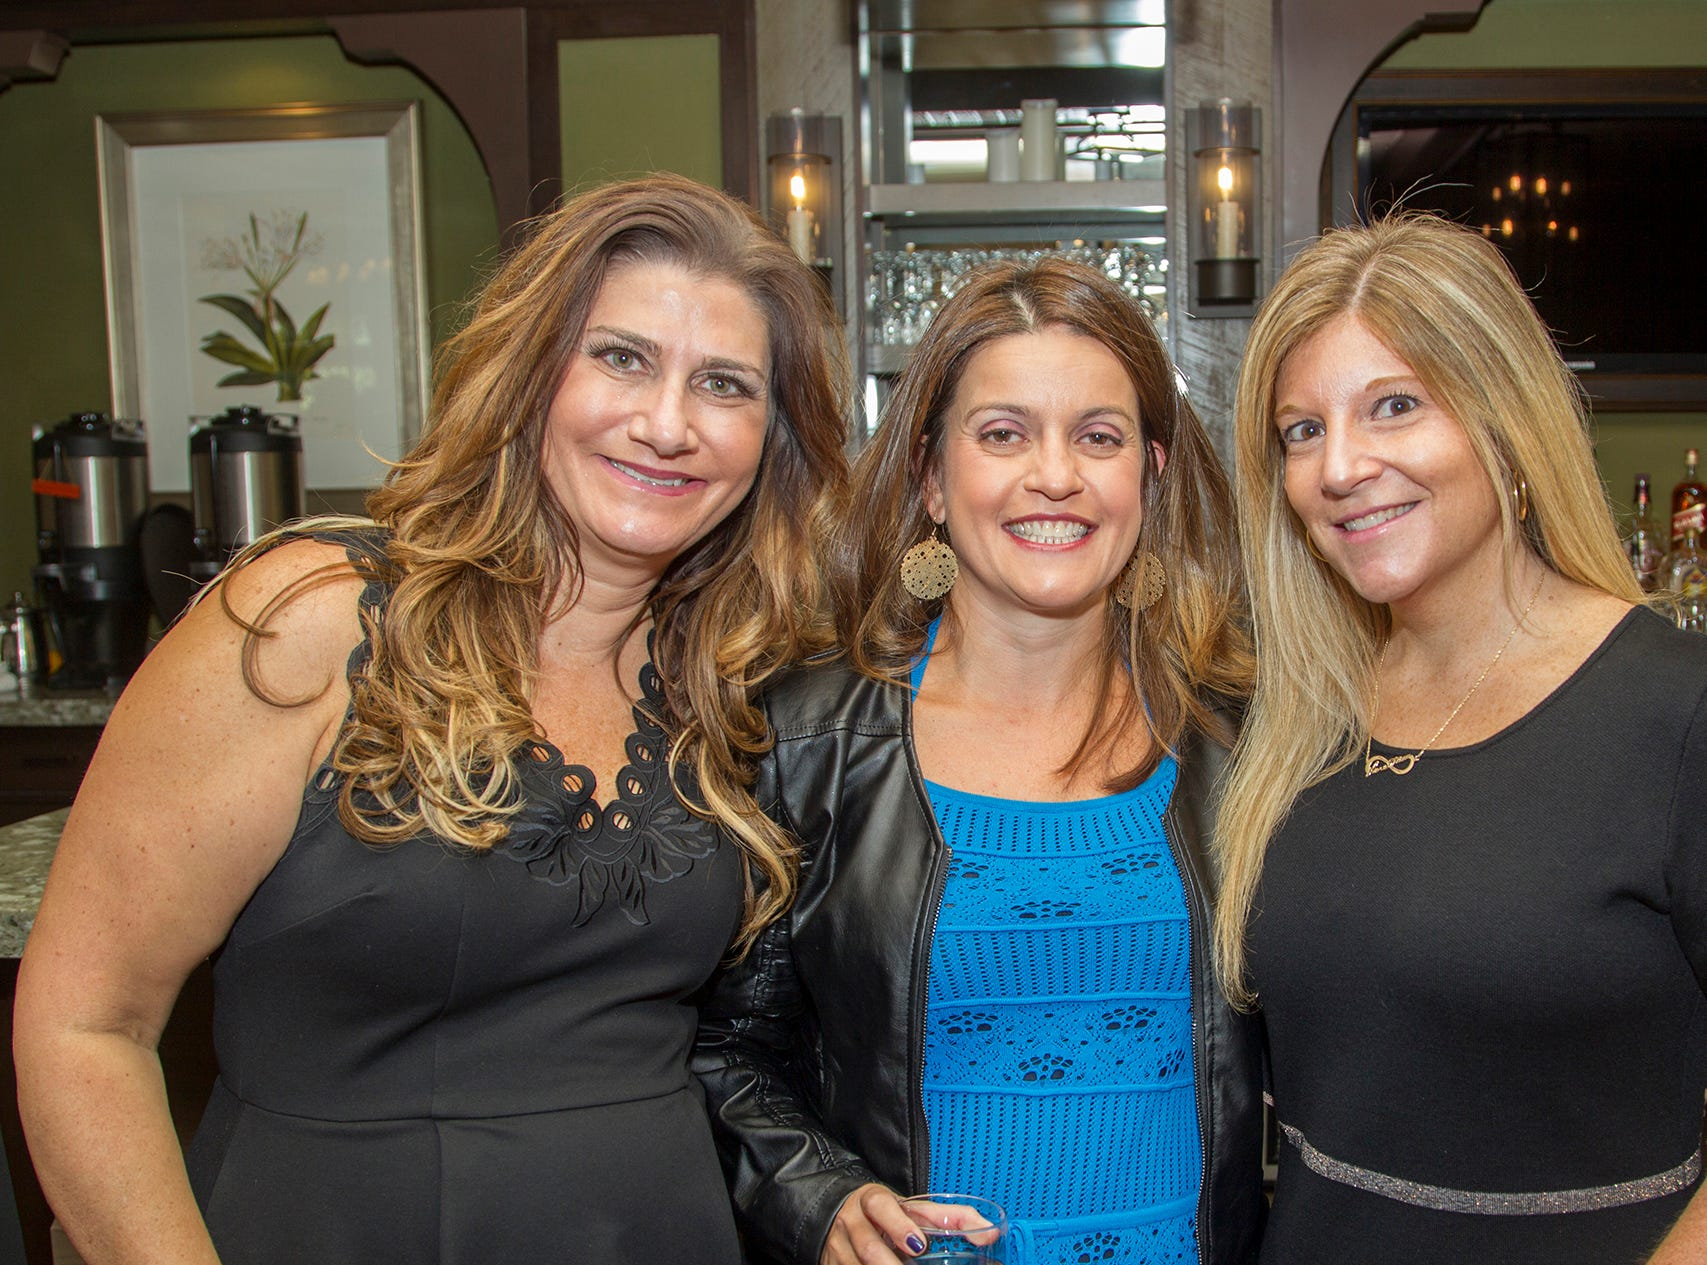 Vera Stern, Ilona Sharuk, Danielle Surmanel. Spring Lake Toys Foundation held its 3rd annual fundraising gala luncheon at Indian Trail Club in Franklin Lakes. The luncheon fundraiser raises funds for children with illnesses. 10/18/2018